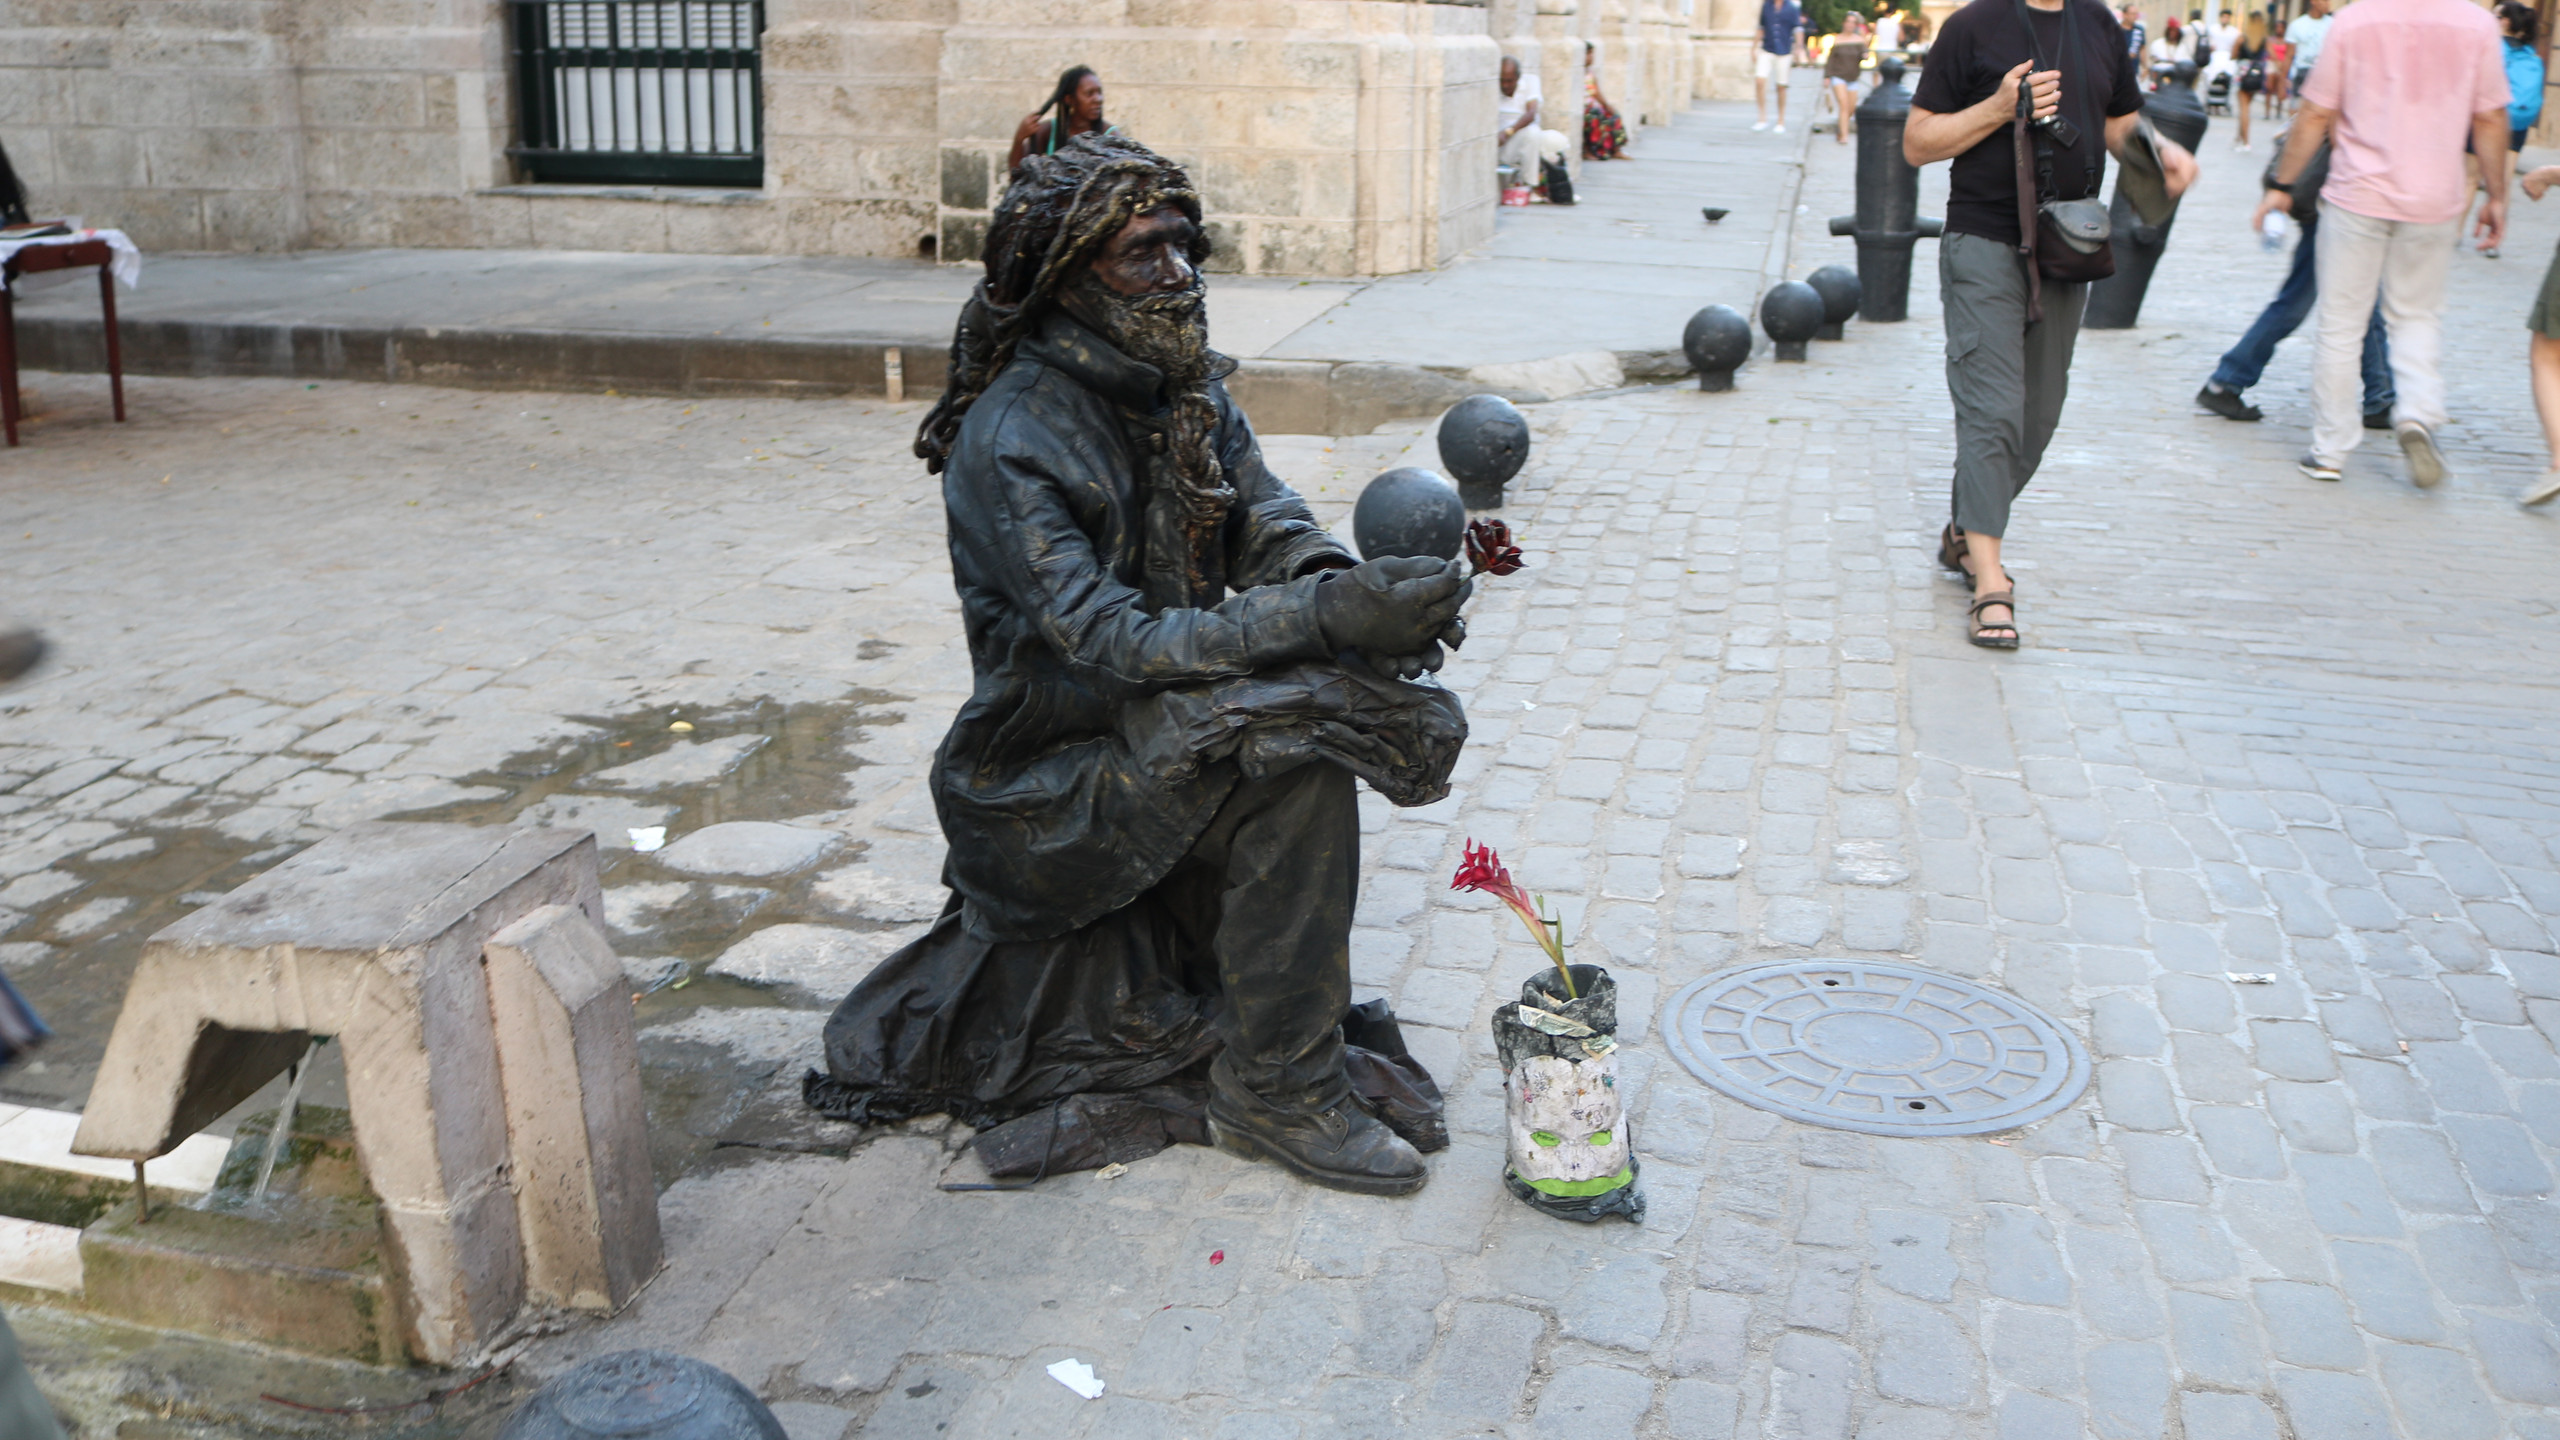 Living statue sitting on a street in Old Havana with a tip can with a red flower in it in front of him.